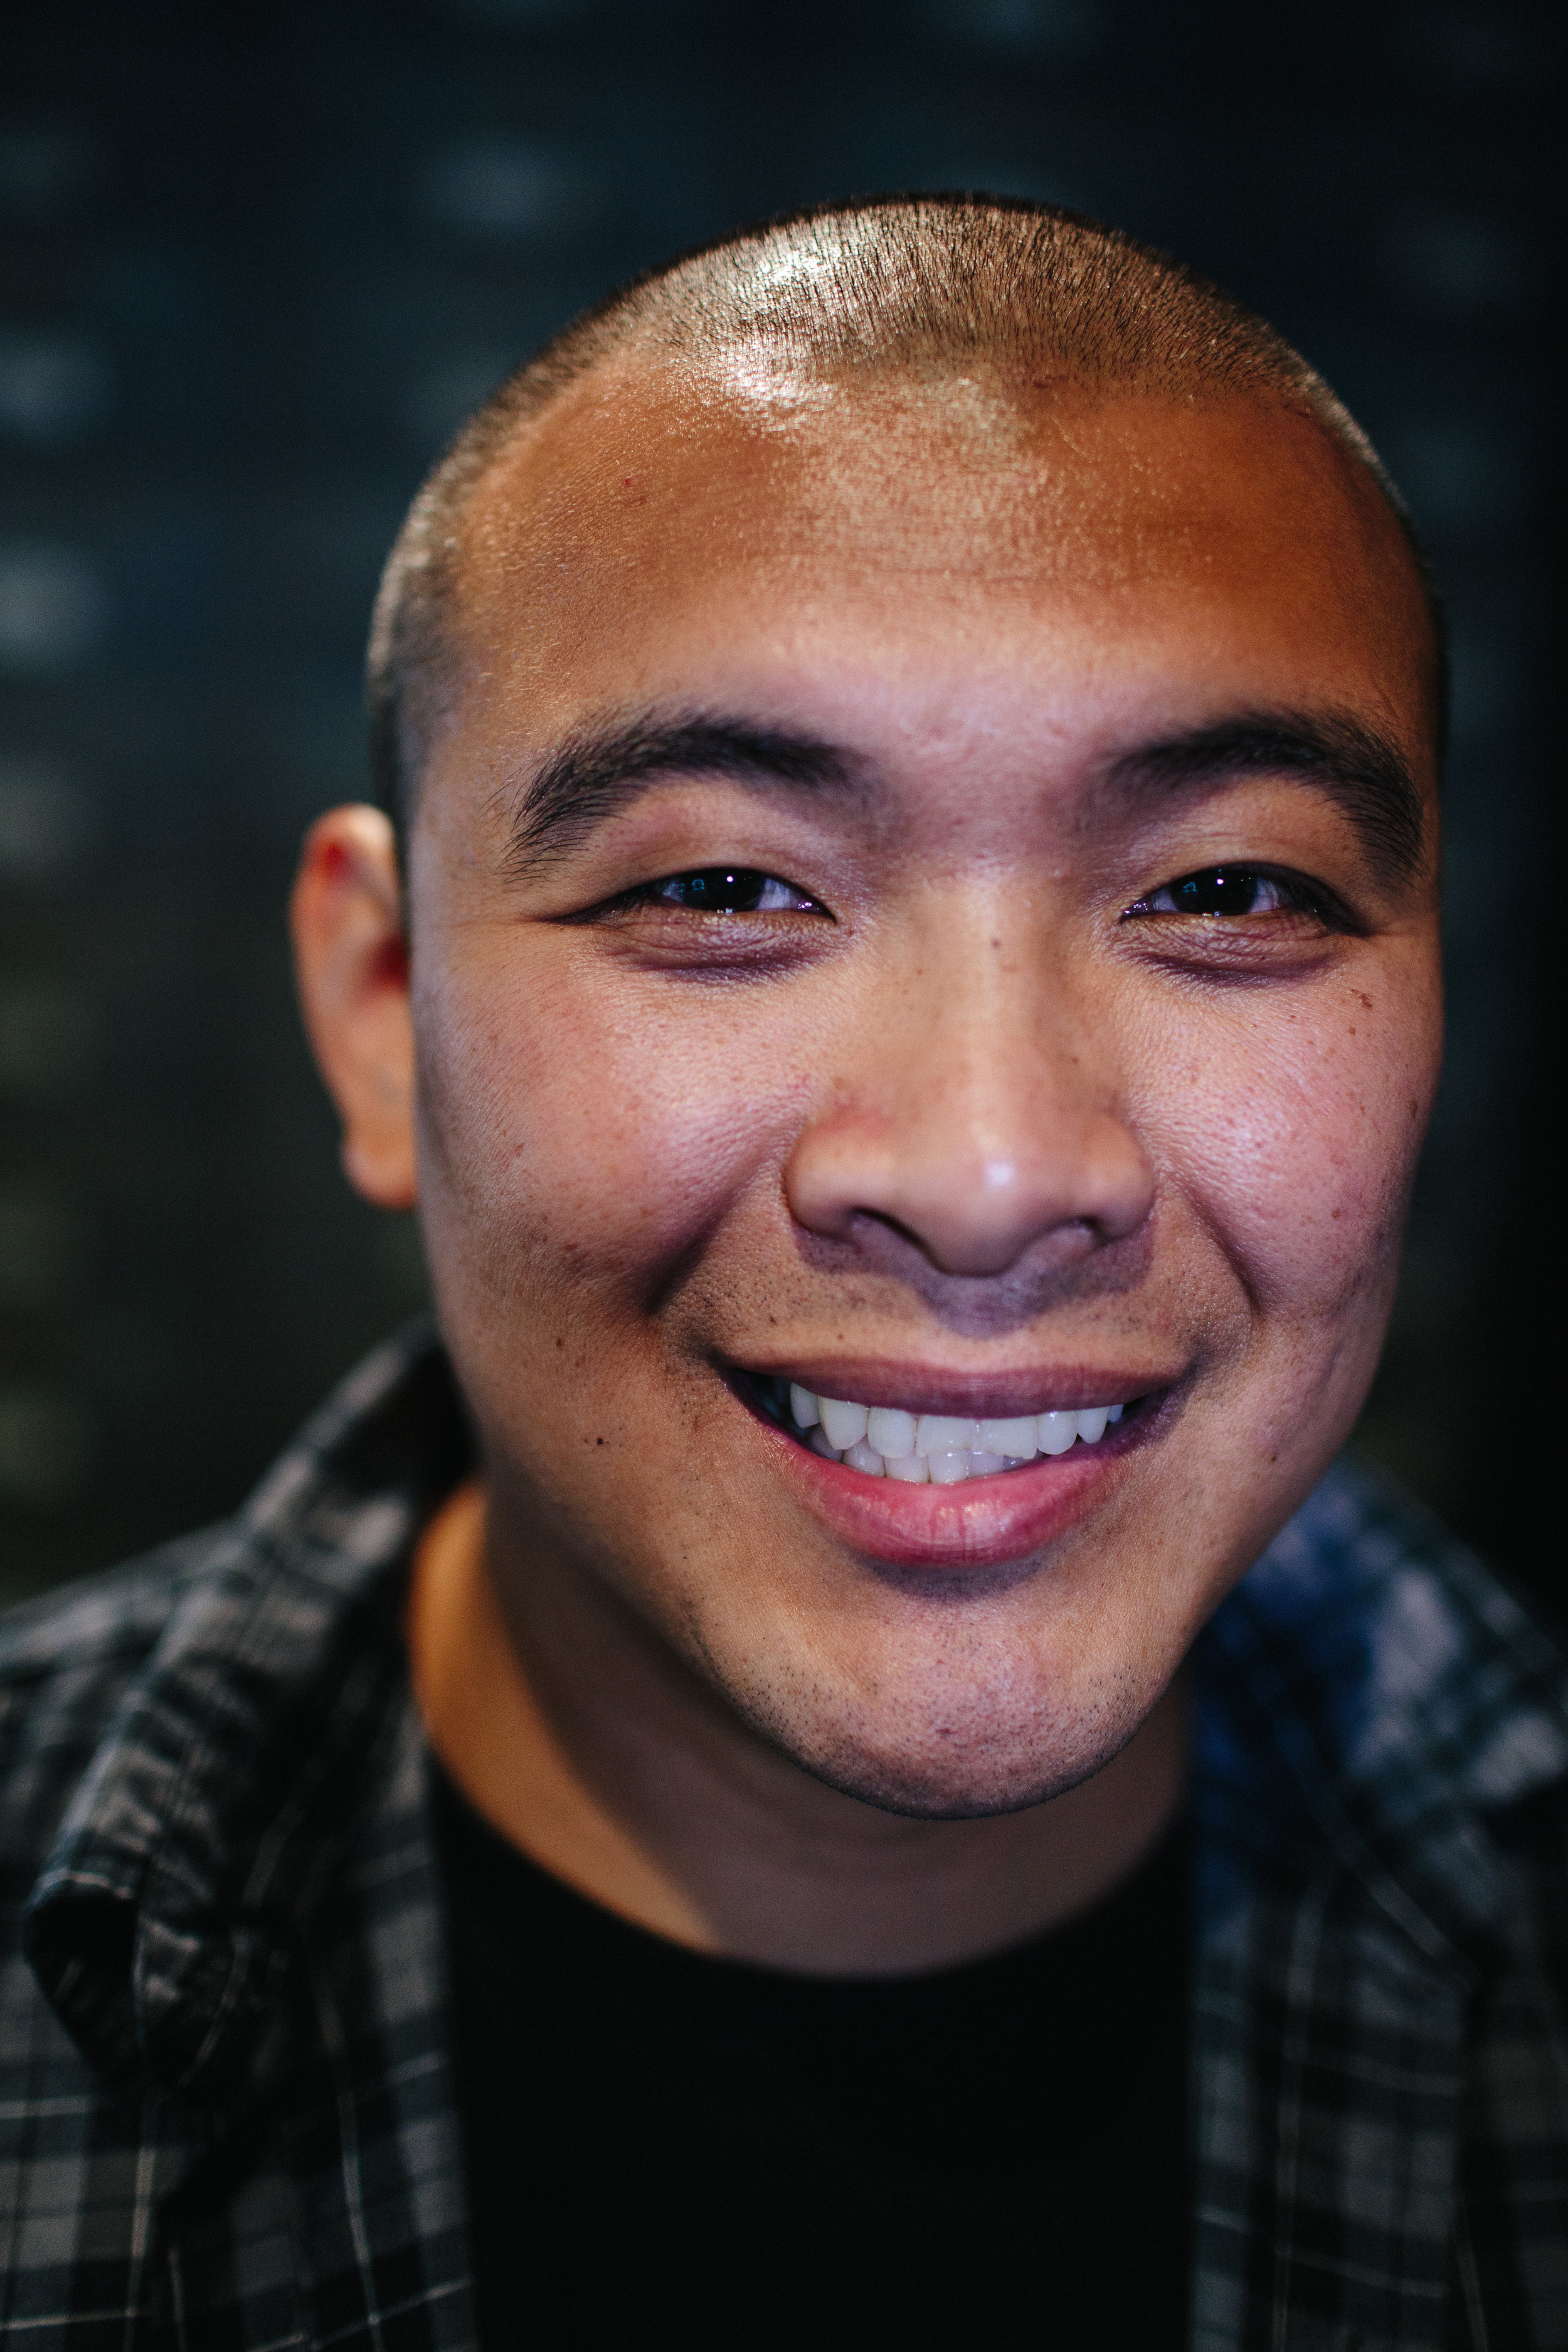 """""""Before coming to Code Tenderloin, I was without a job. I was lost with no sense of direction and lacked self confidence. Since completing Code Tenderloin, I'm now volunteering with Code Tenderloin and pursuing a degree in Computer Science.""""  Charles Duong, , July 2017 Cohort"""